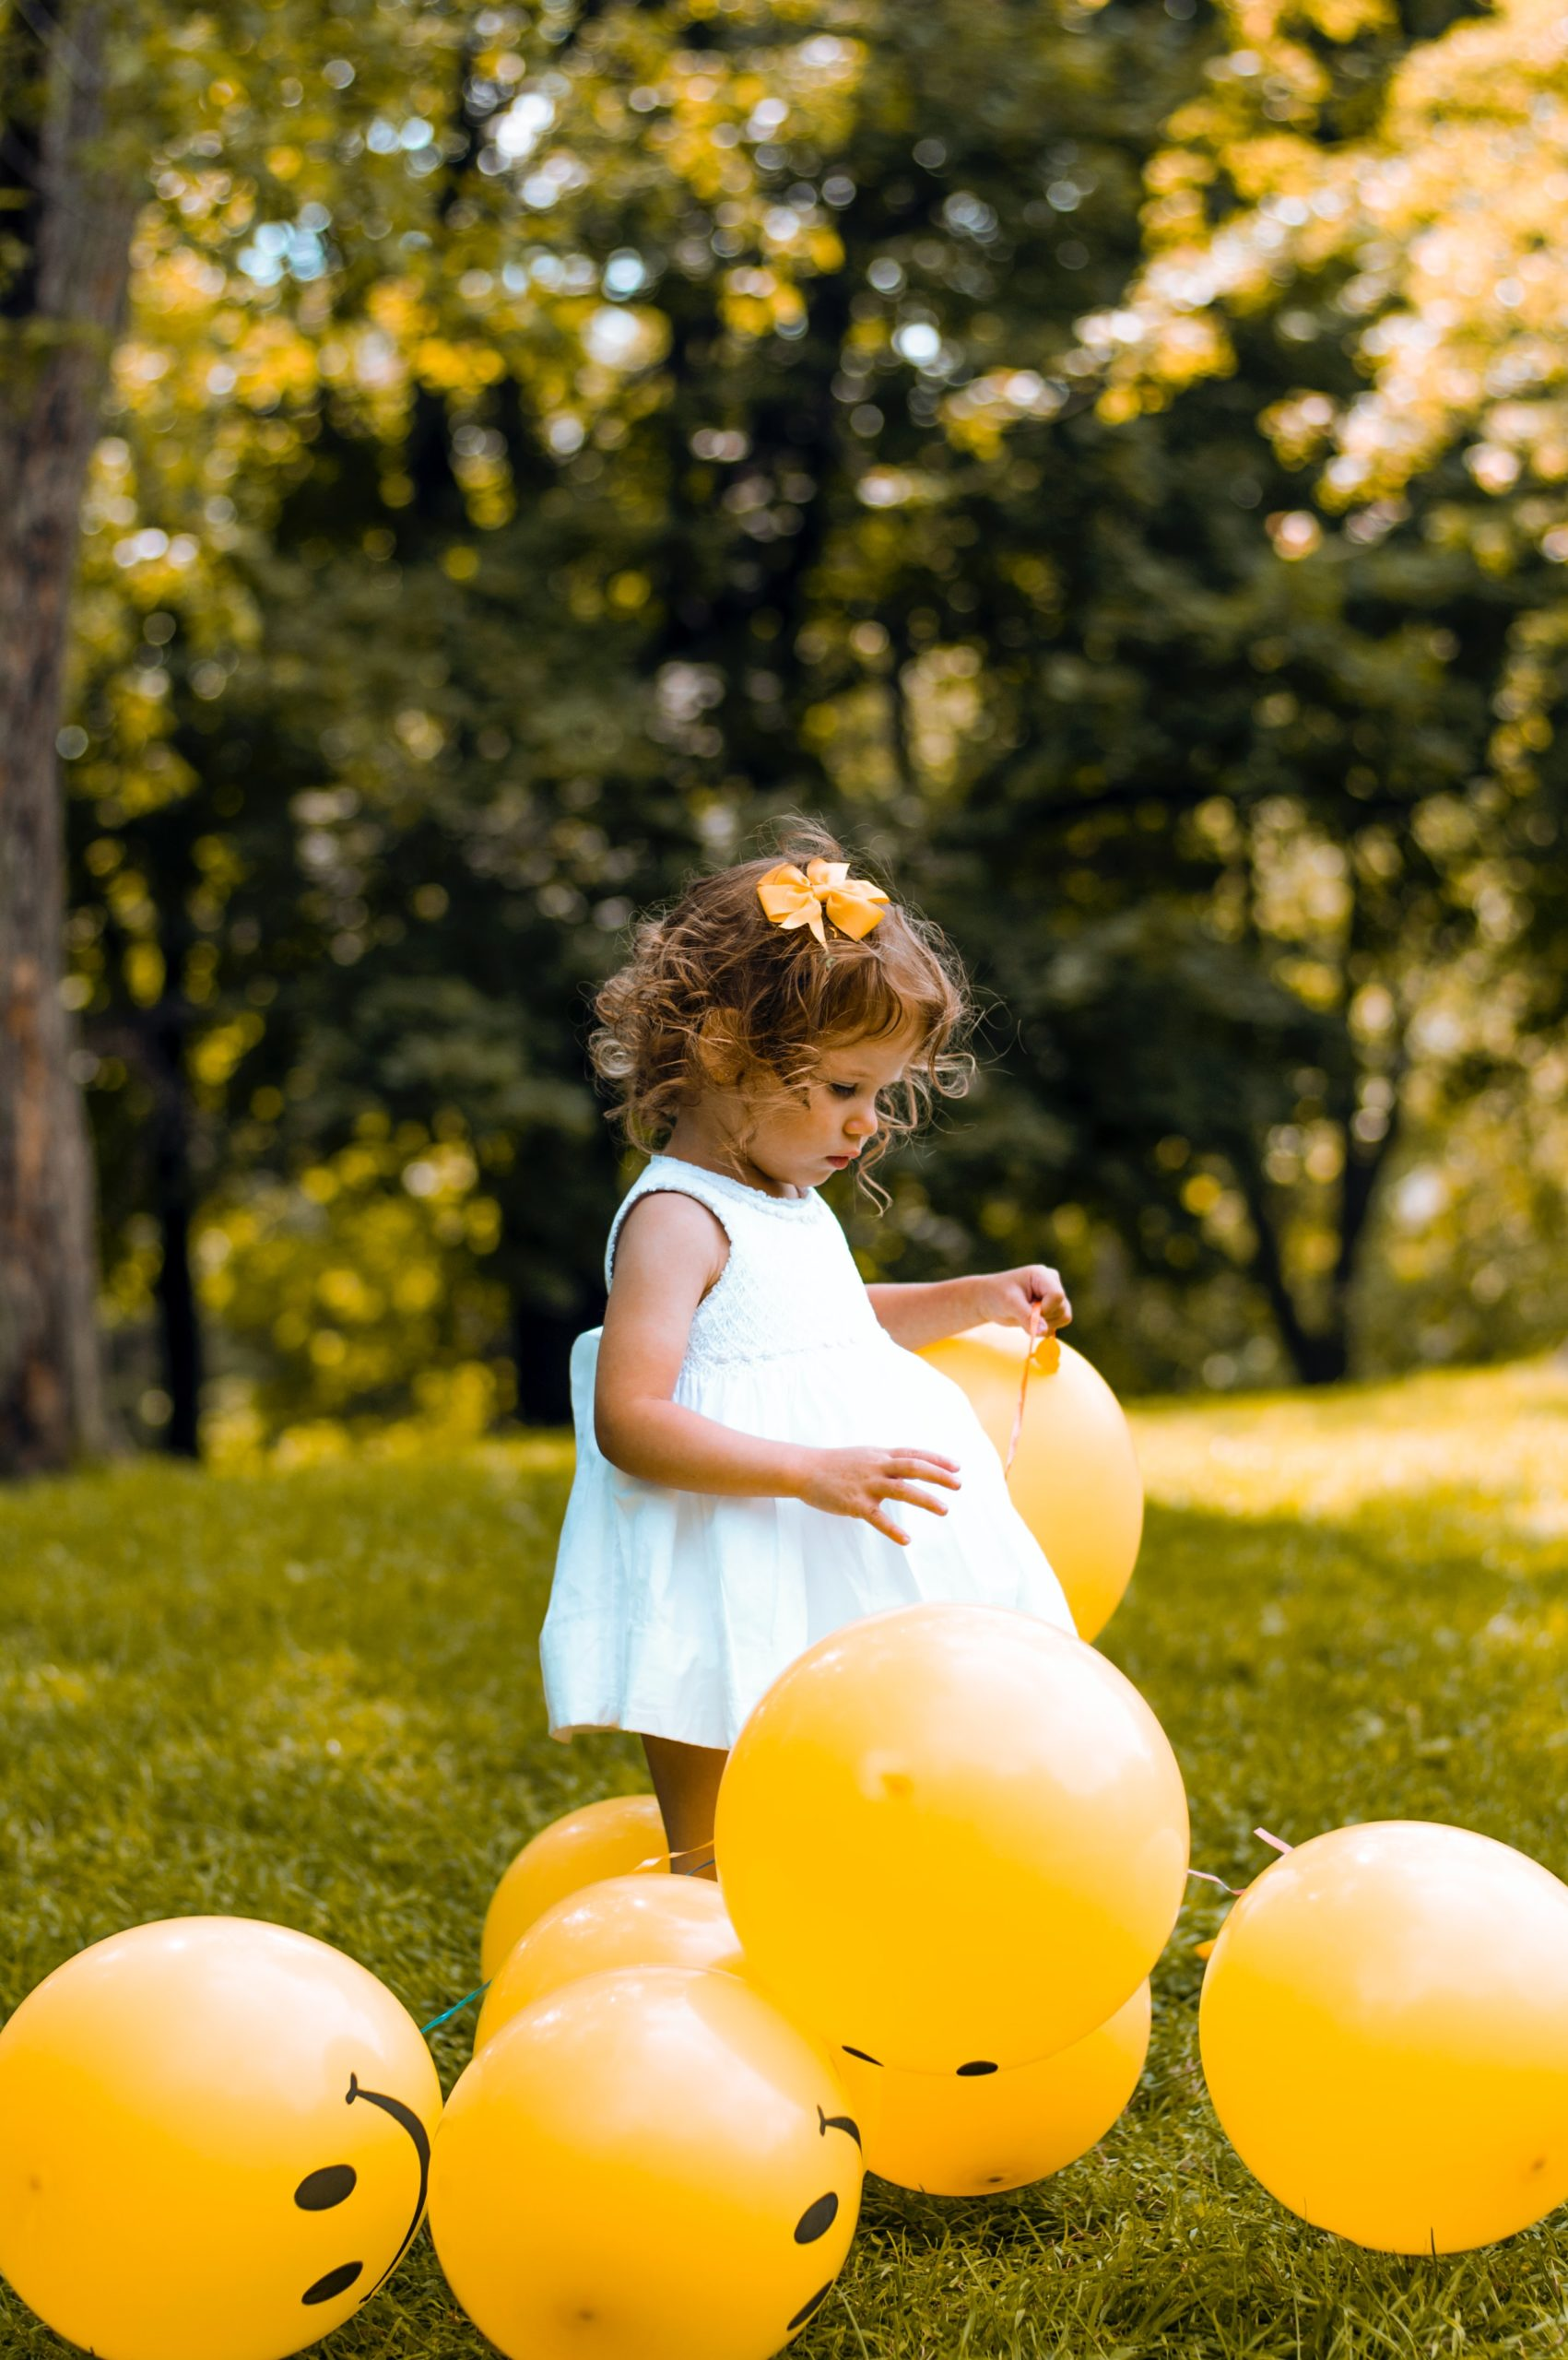 a photo of a little girl in a white dress playing in a meadow with yellow ballons